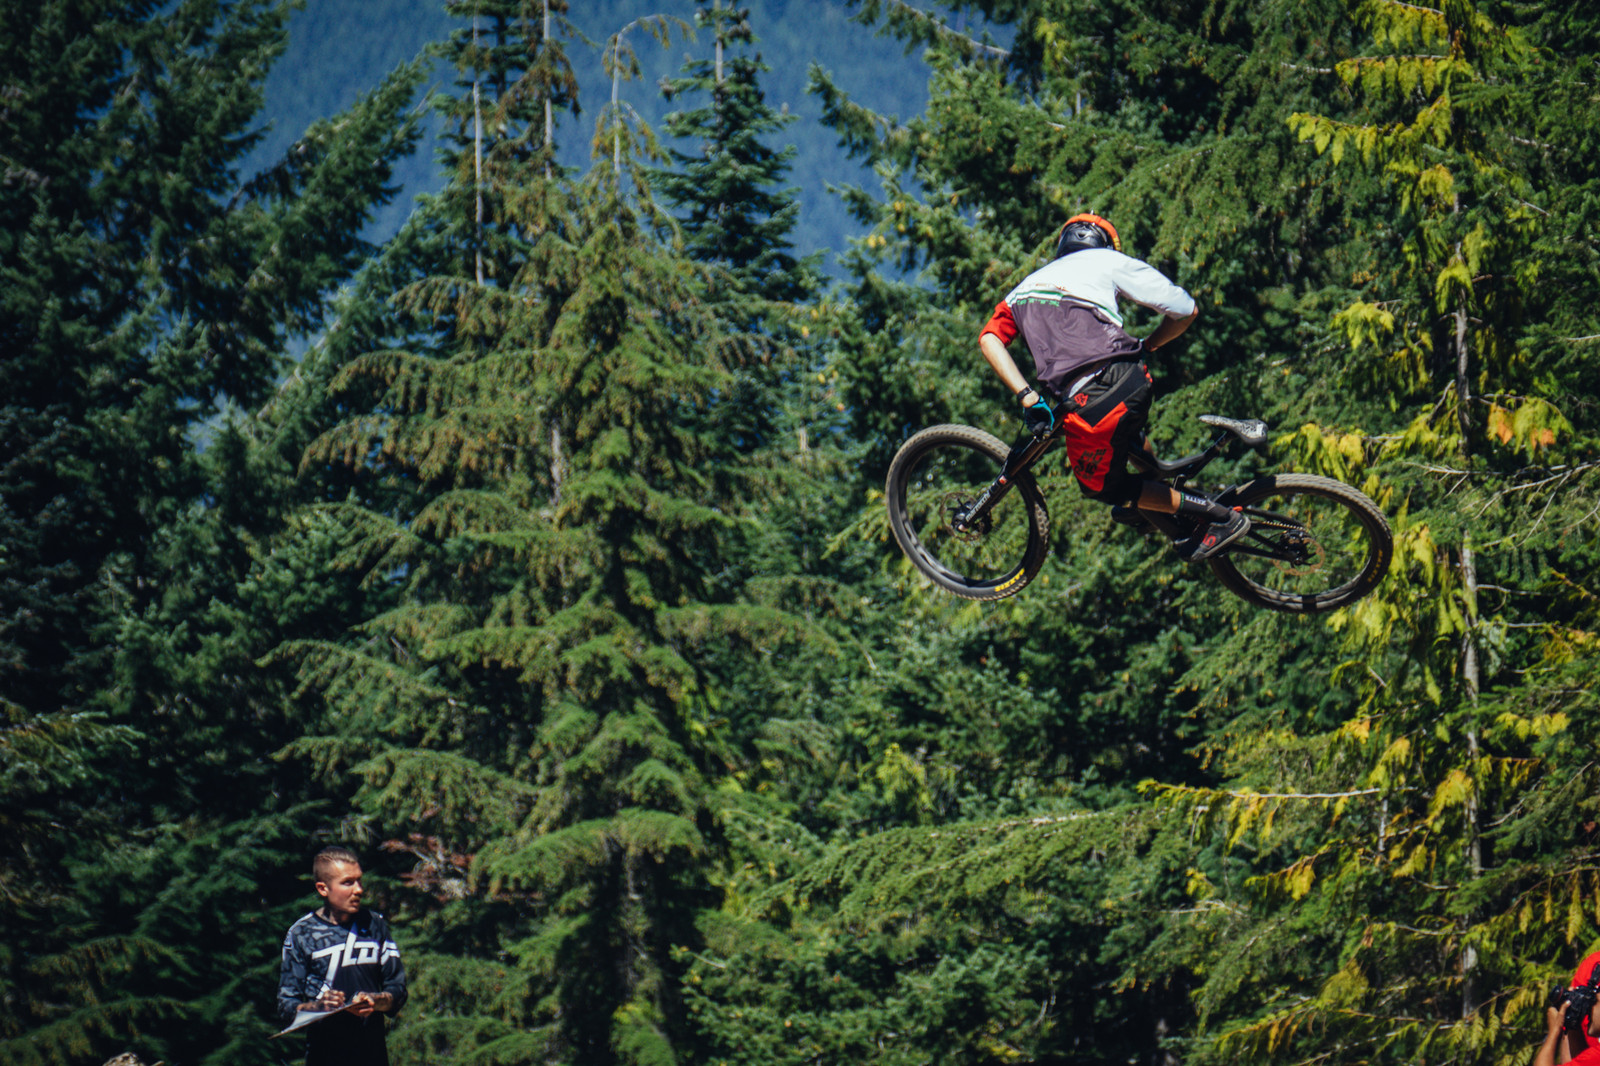 Gonzalo Serenelli - Whip Off World Champs Qualifiers - Going for Broke: 14 Super Sideways Senders from Whip Off World Champs Qualifiers - Mountain Biking Pictures - Vital MTB